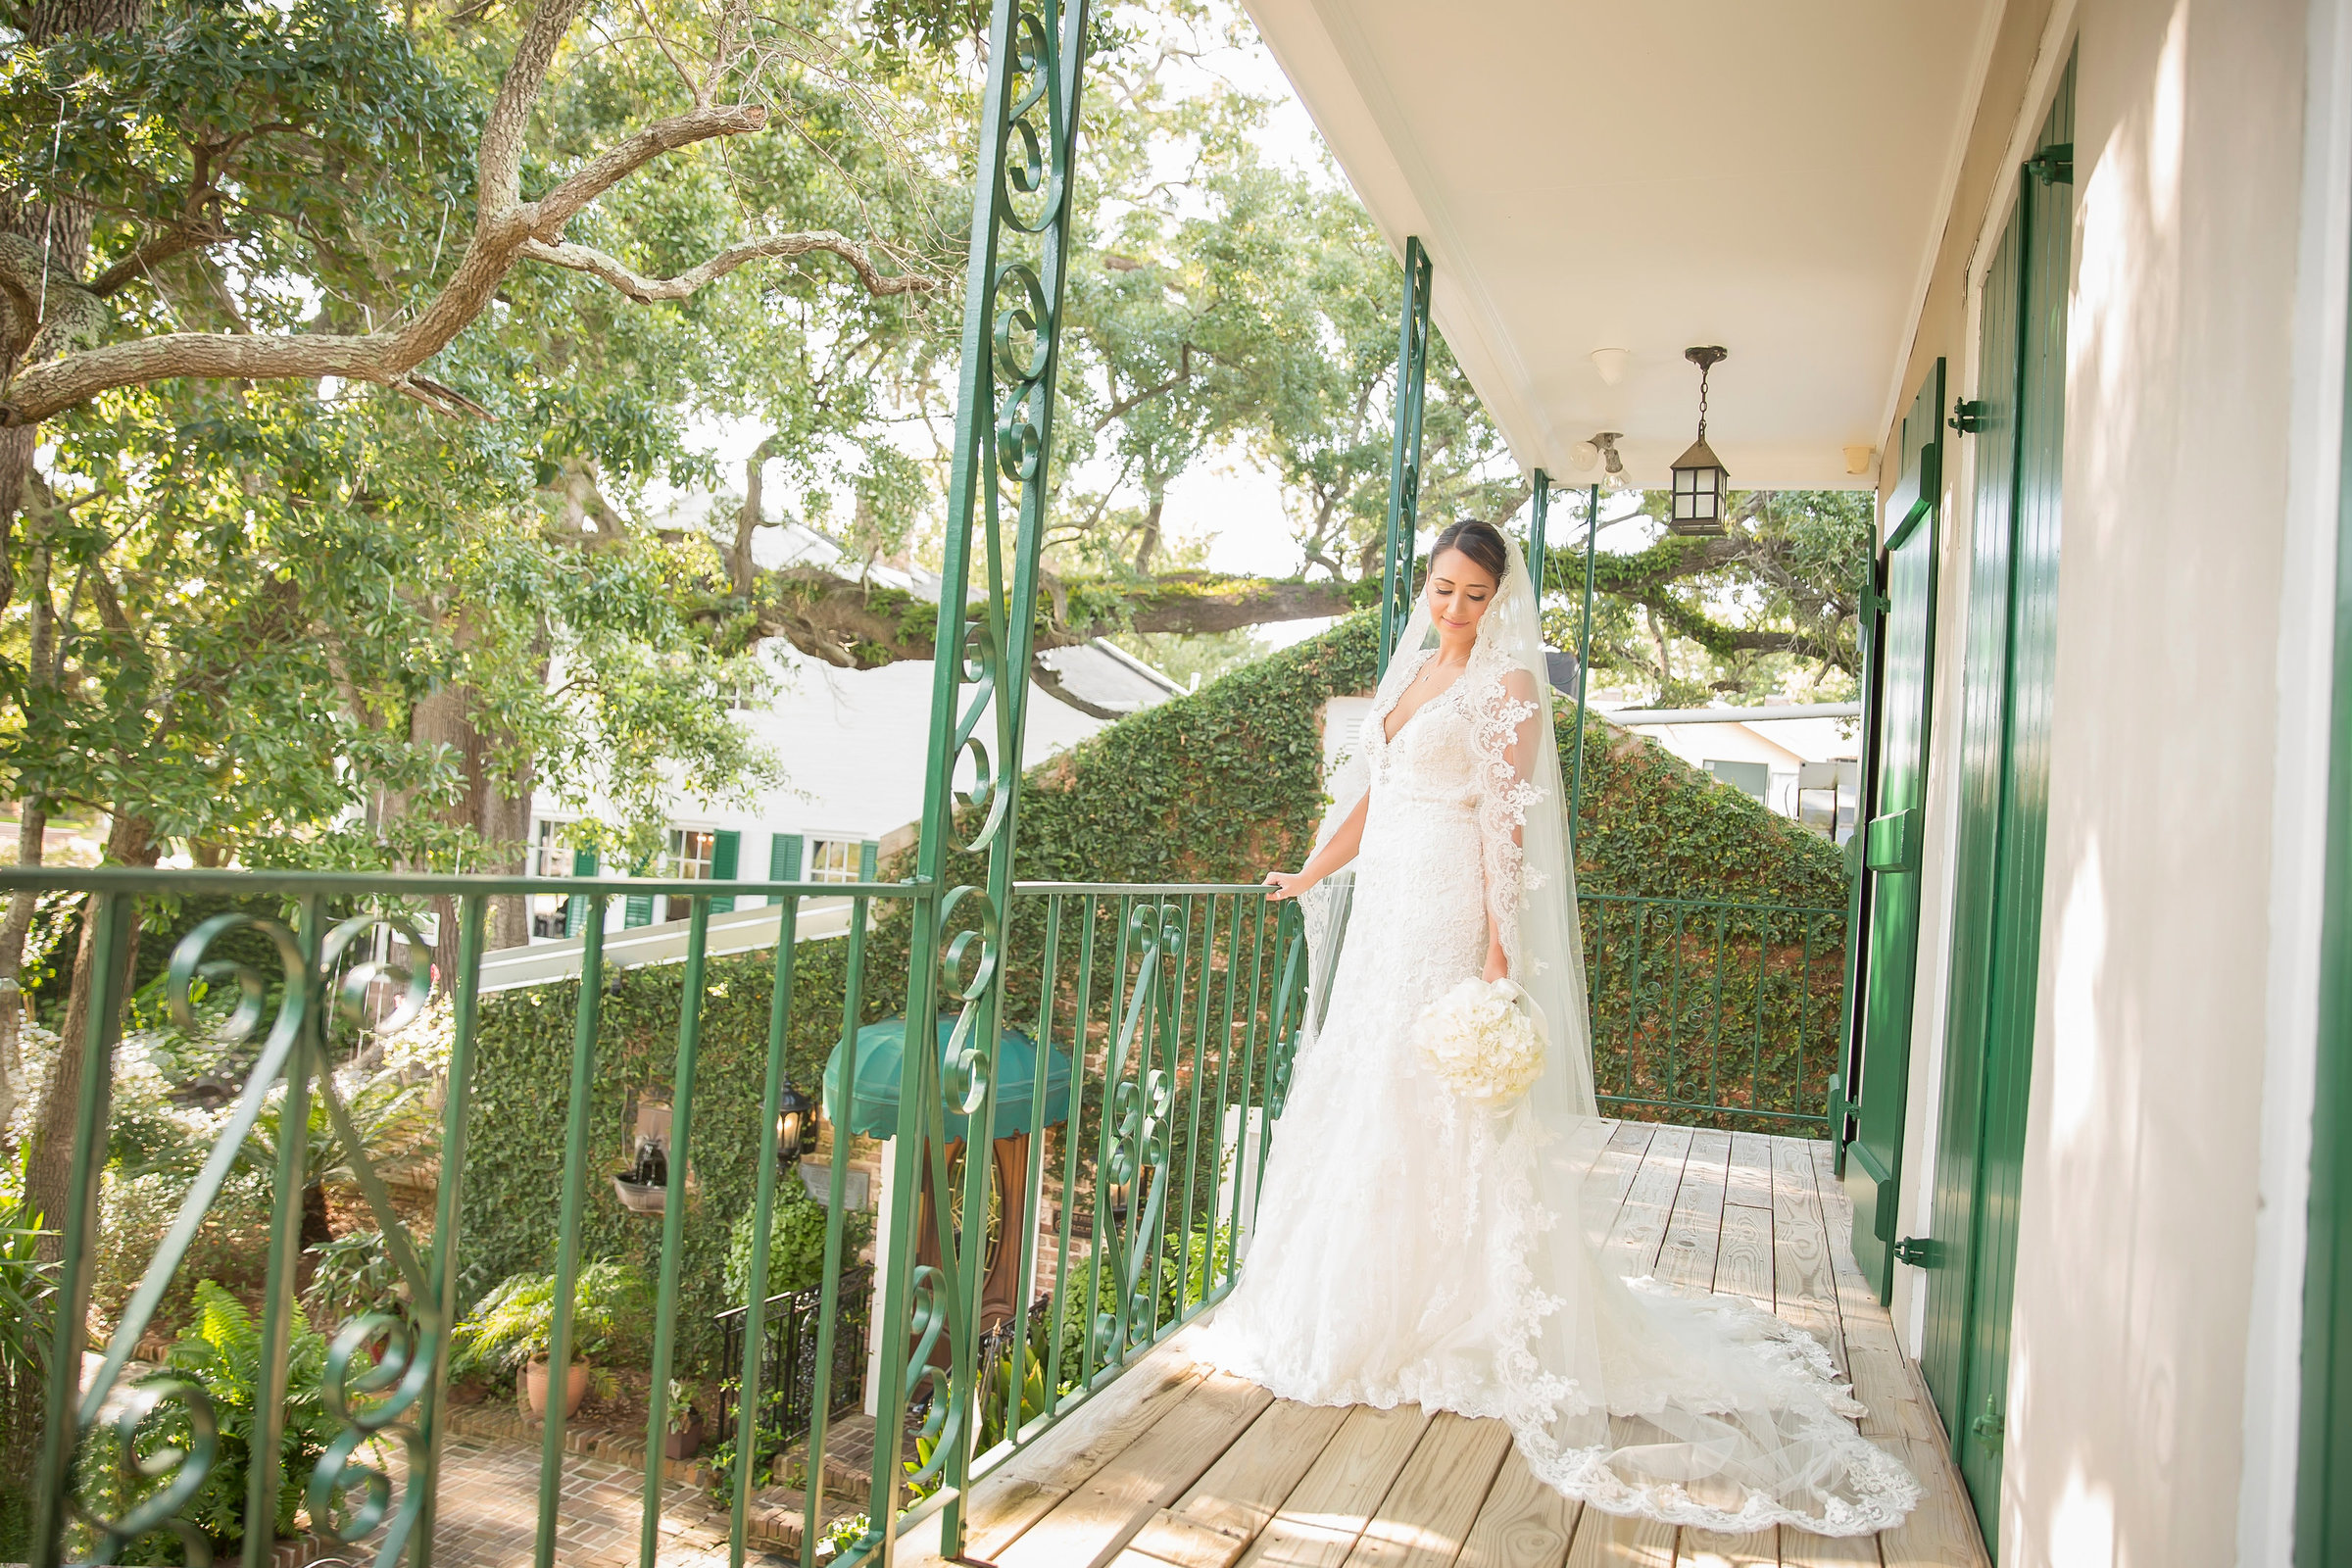 Kayce-Stork-Photography-Biloxi-Wedding-Photographers64